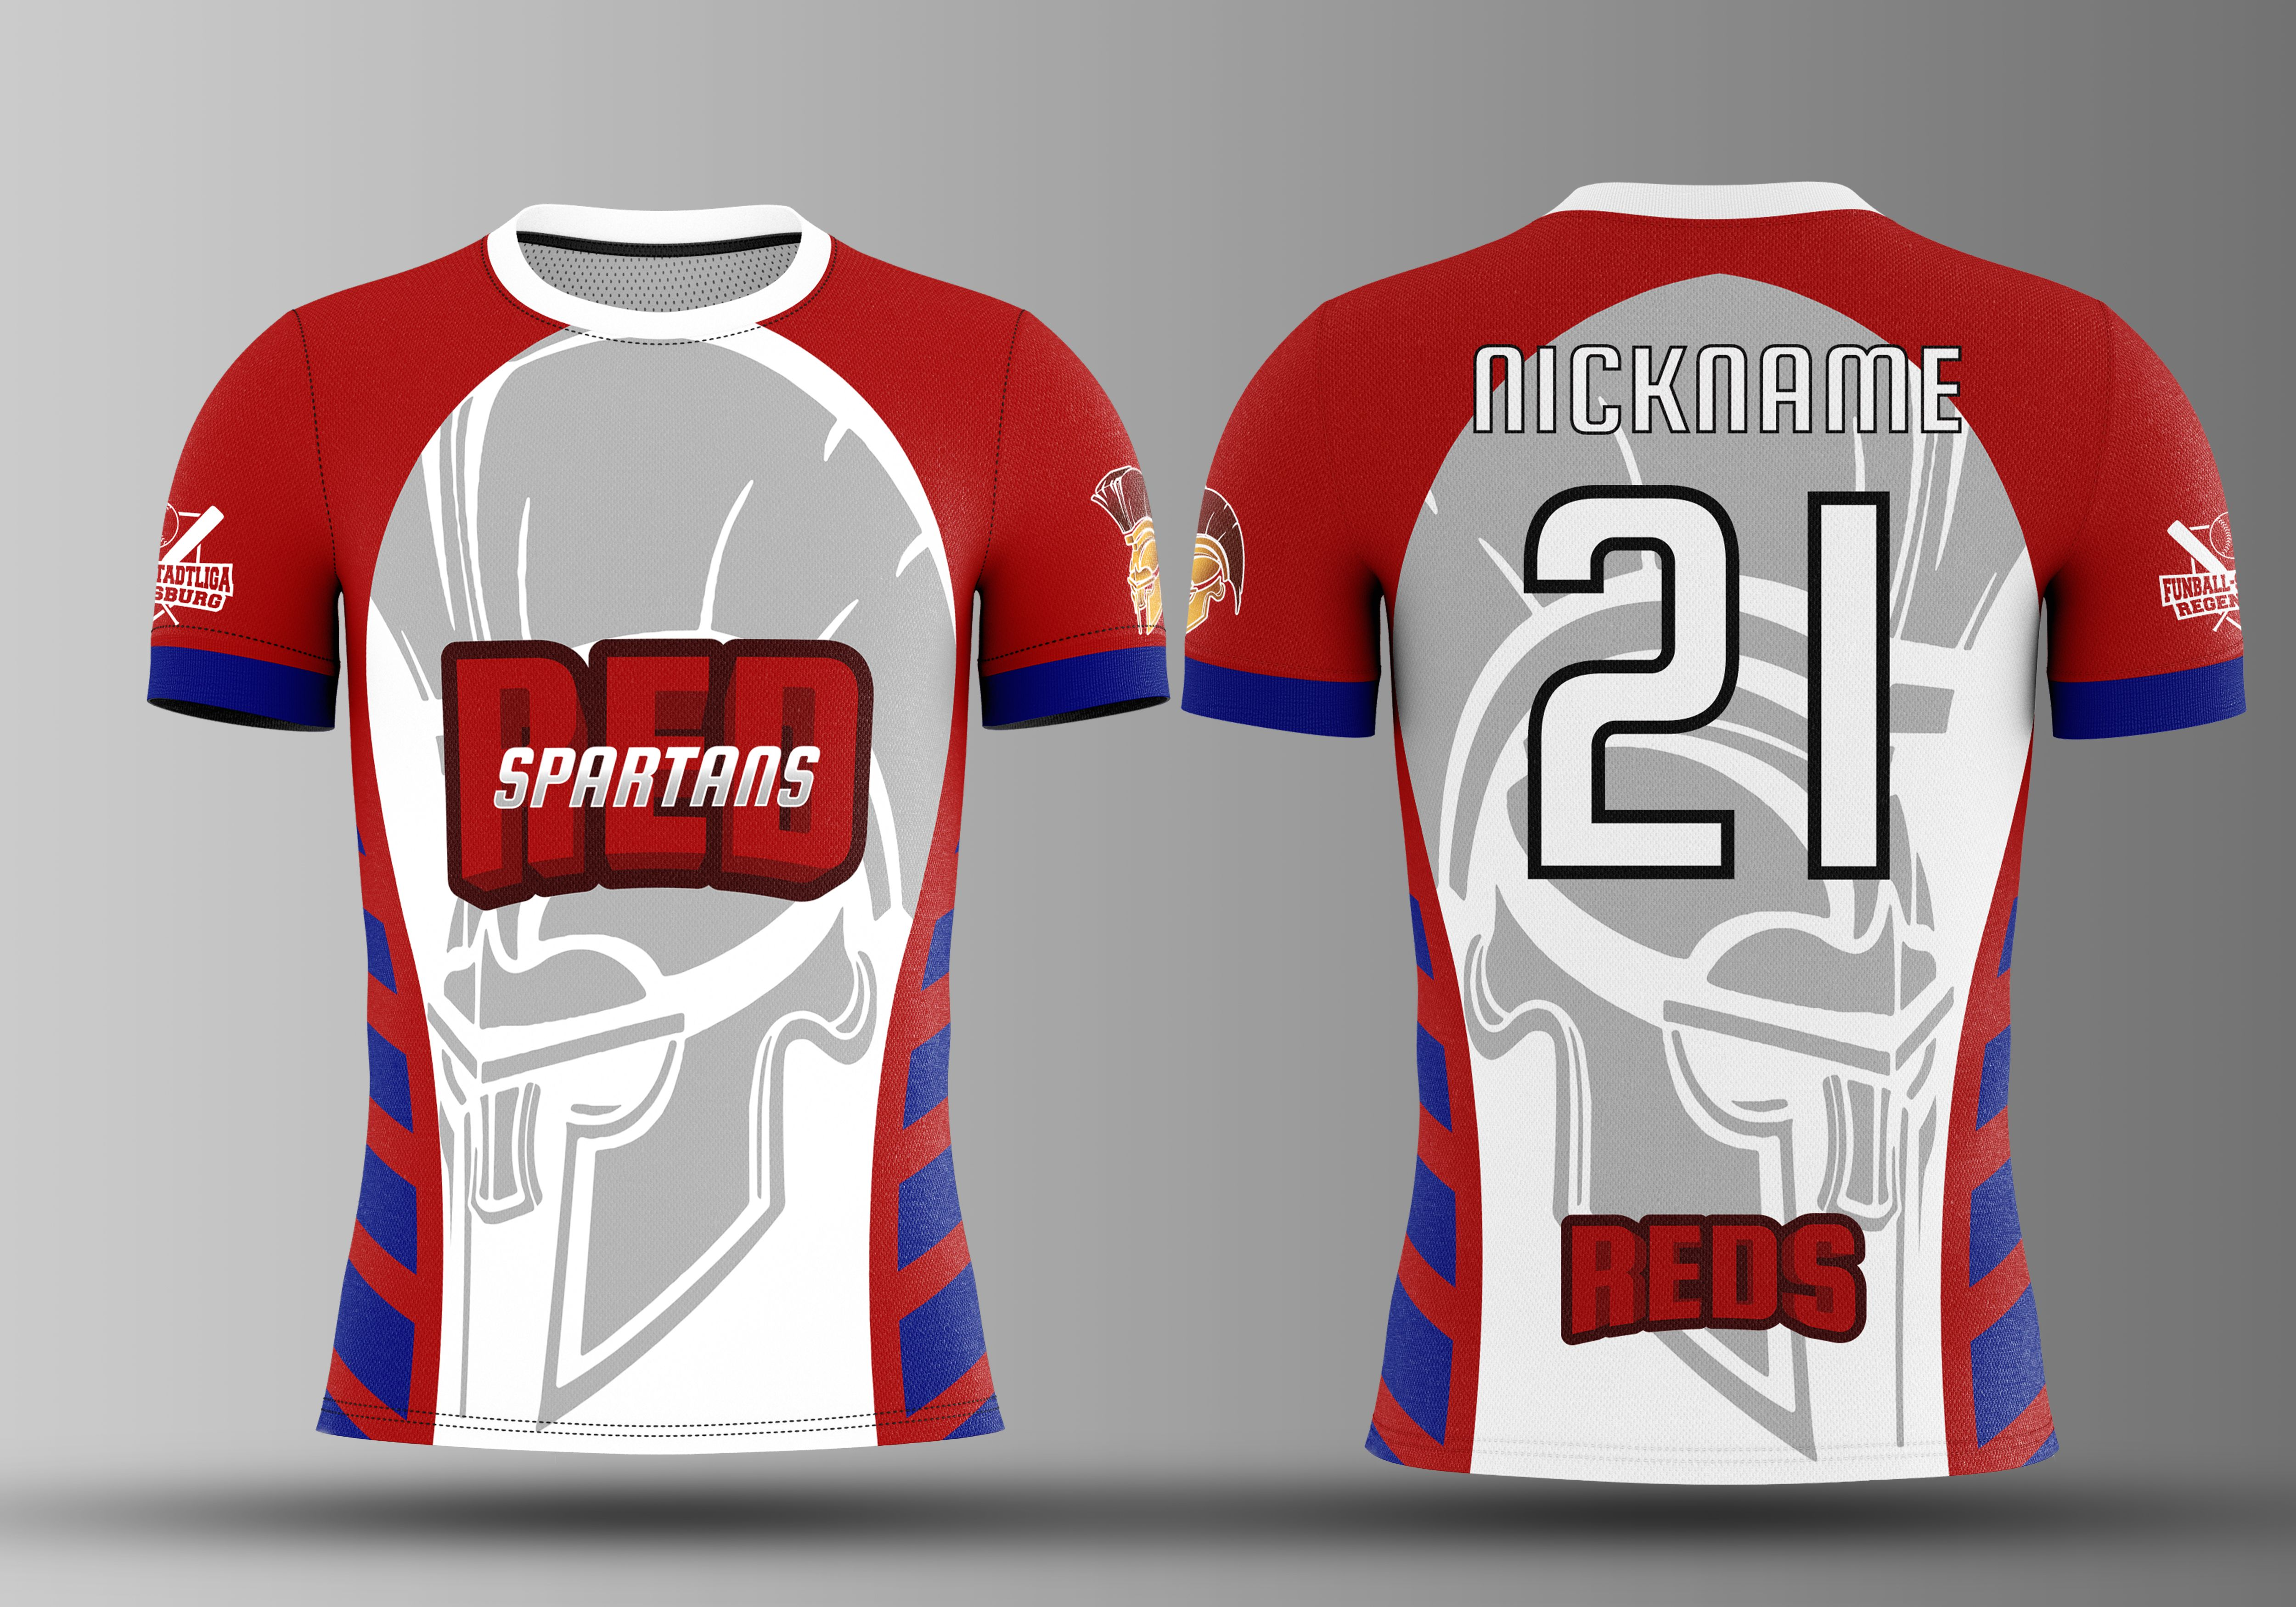 Under21 I Will Design Jersey For Esports Soccer Etc In 24 Hours For 10 On Fiverr Com In 2020 Sport T Shirt Sleeves Clothing Black Shirt